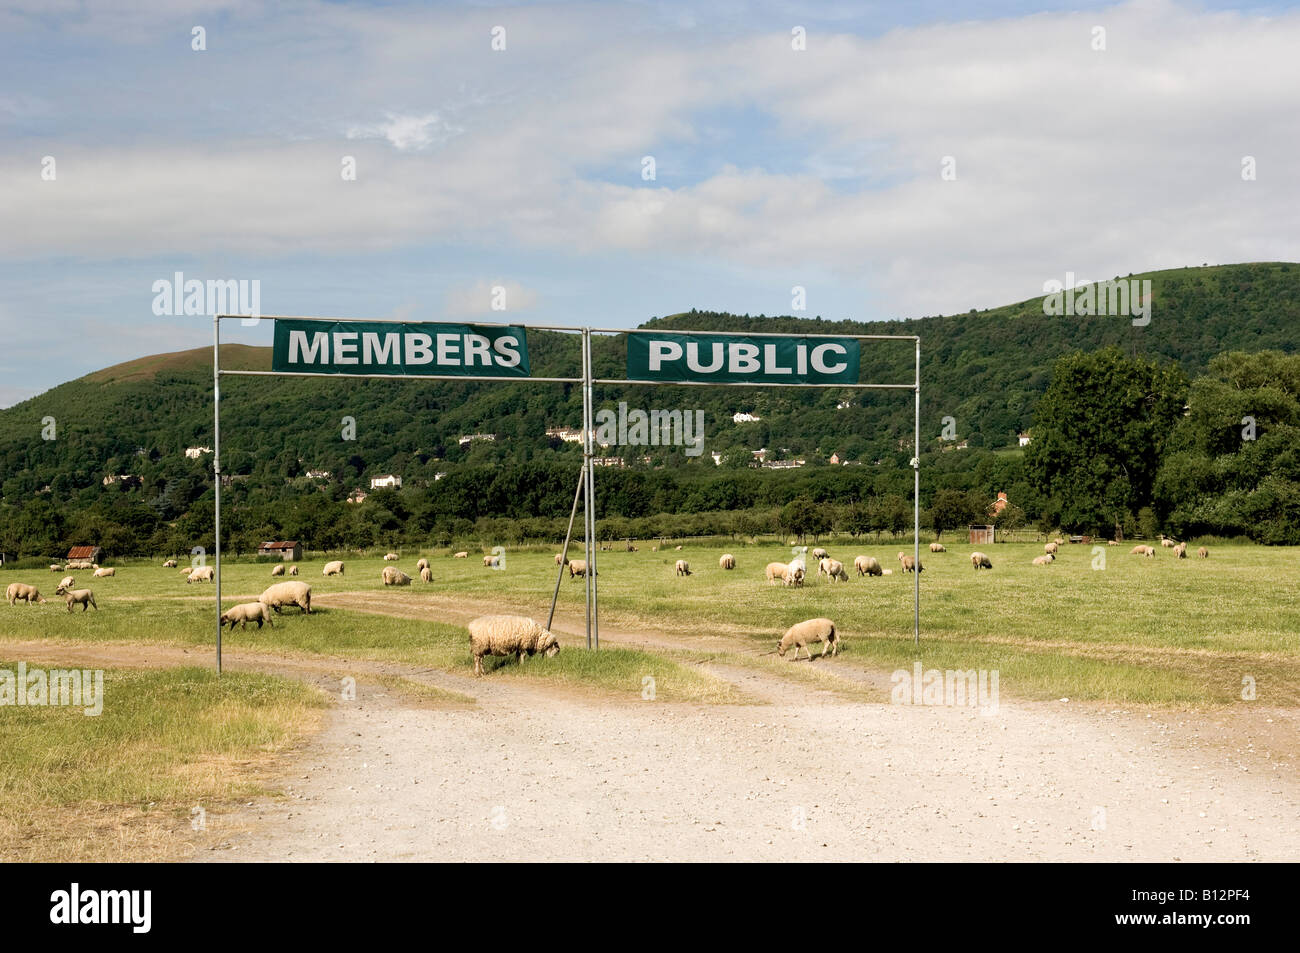 Members and public entrances to  the Three Counties Show-ground in Malvern Worcestershire - Stock Image